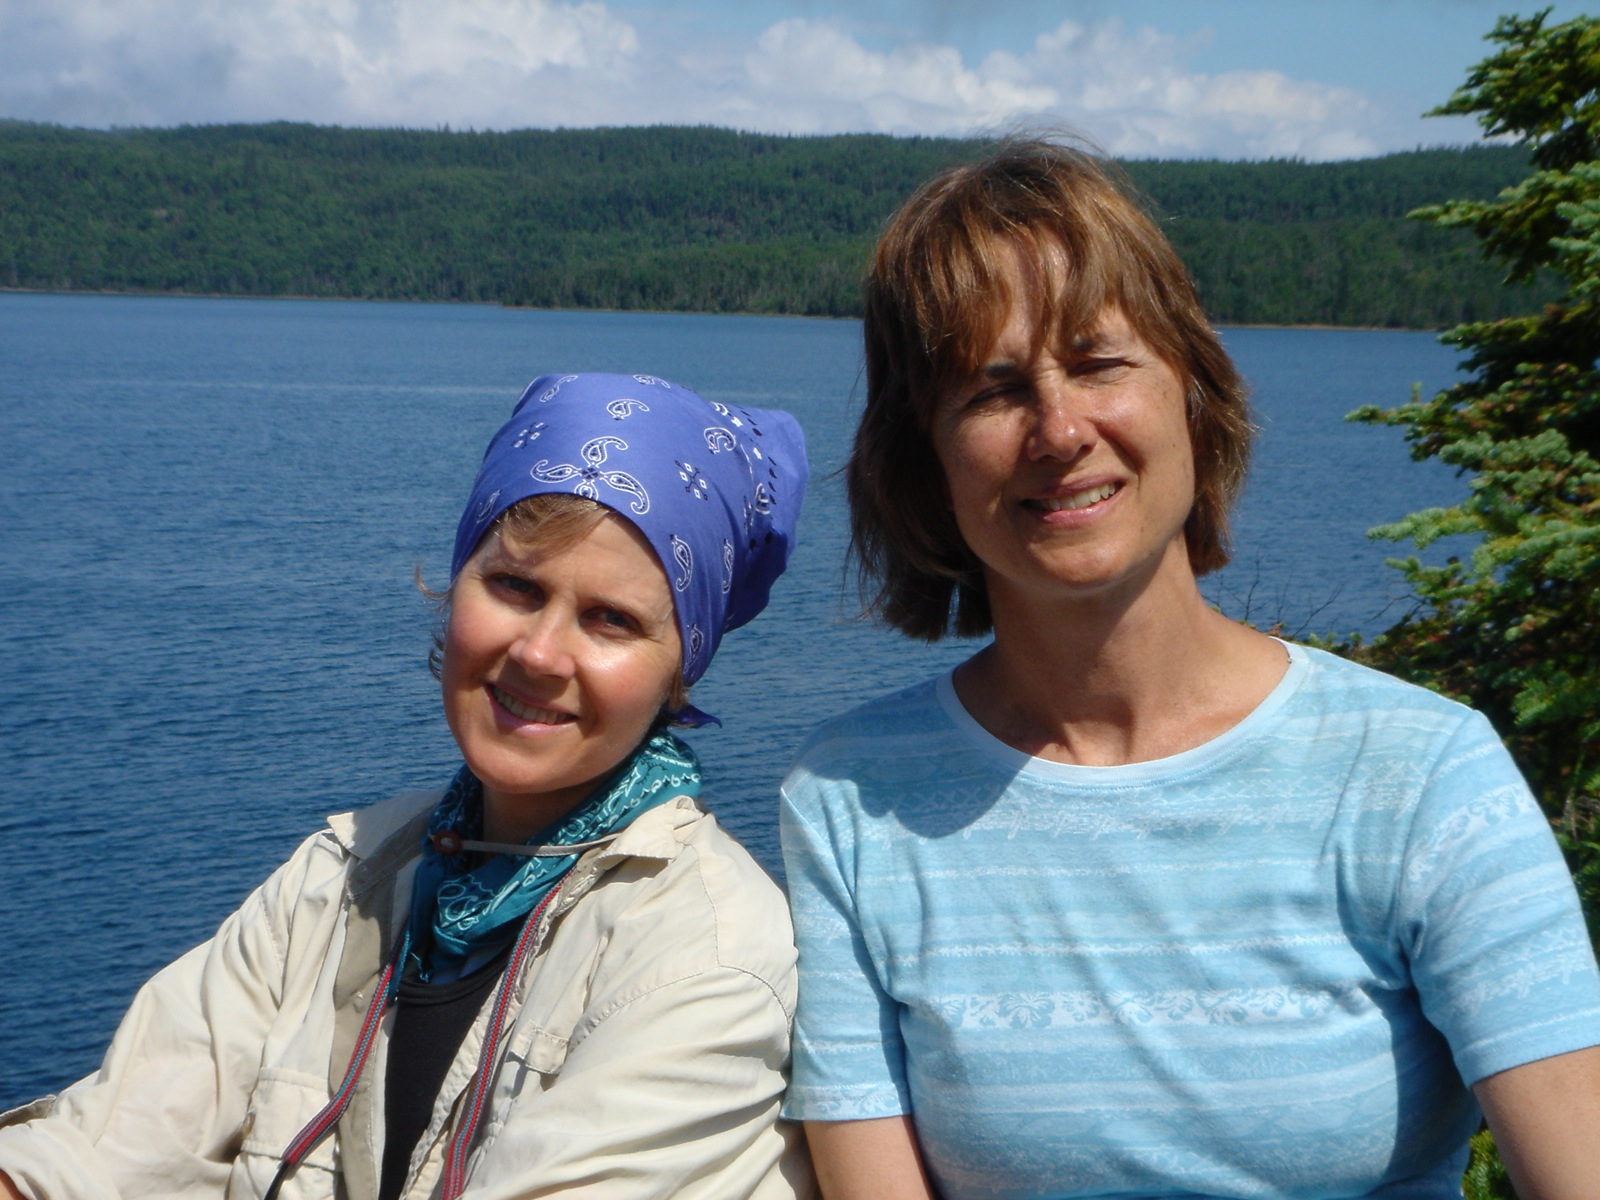 Two women smile in front of Lake Superior on the Slate Islands Sea Kayak Expedition.